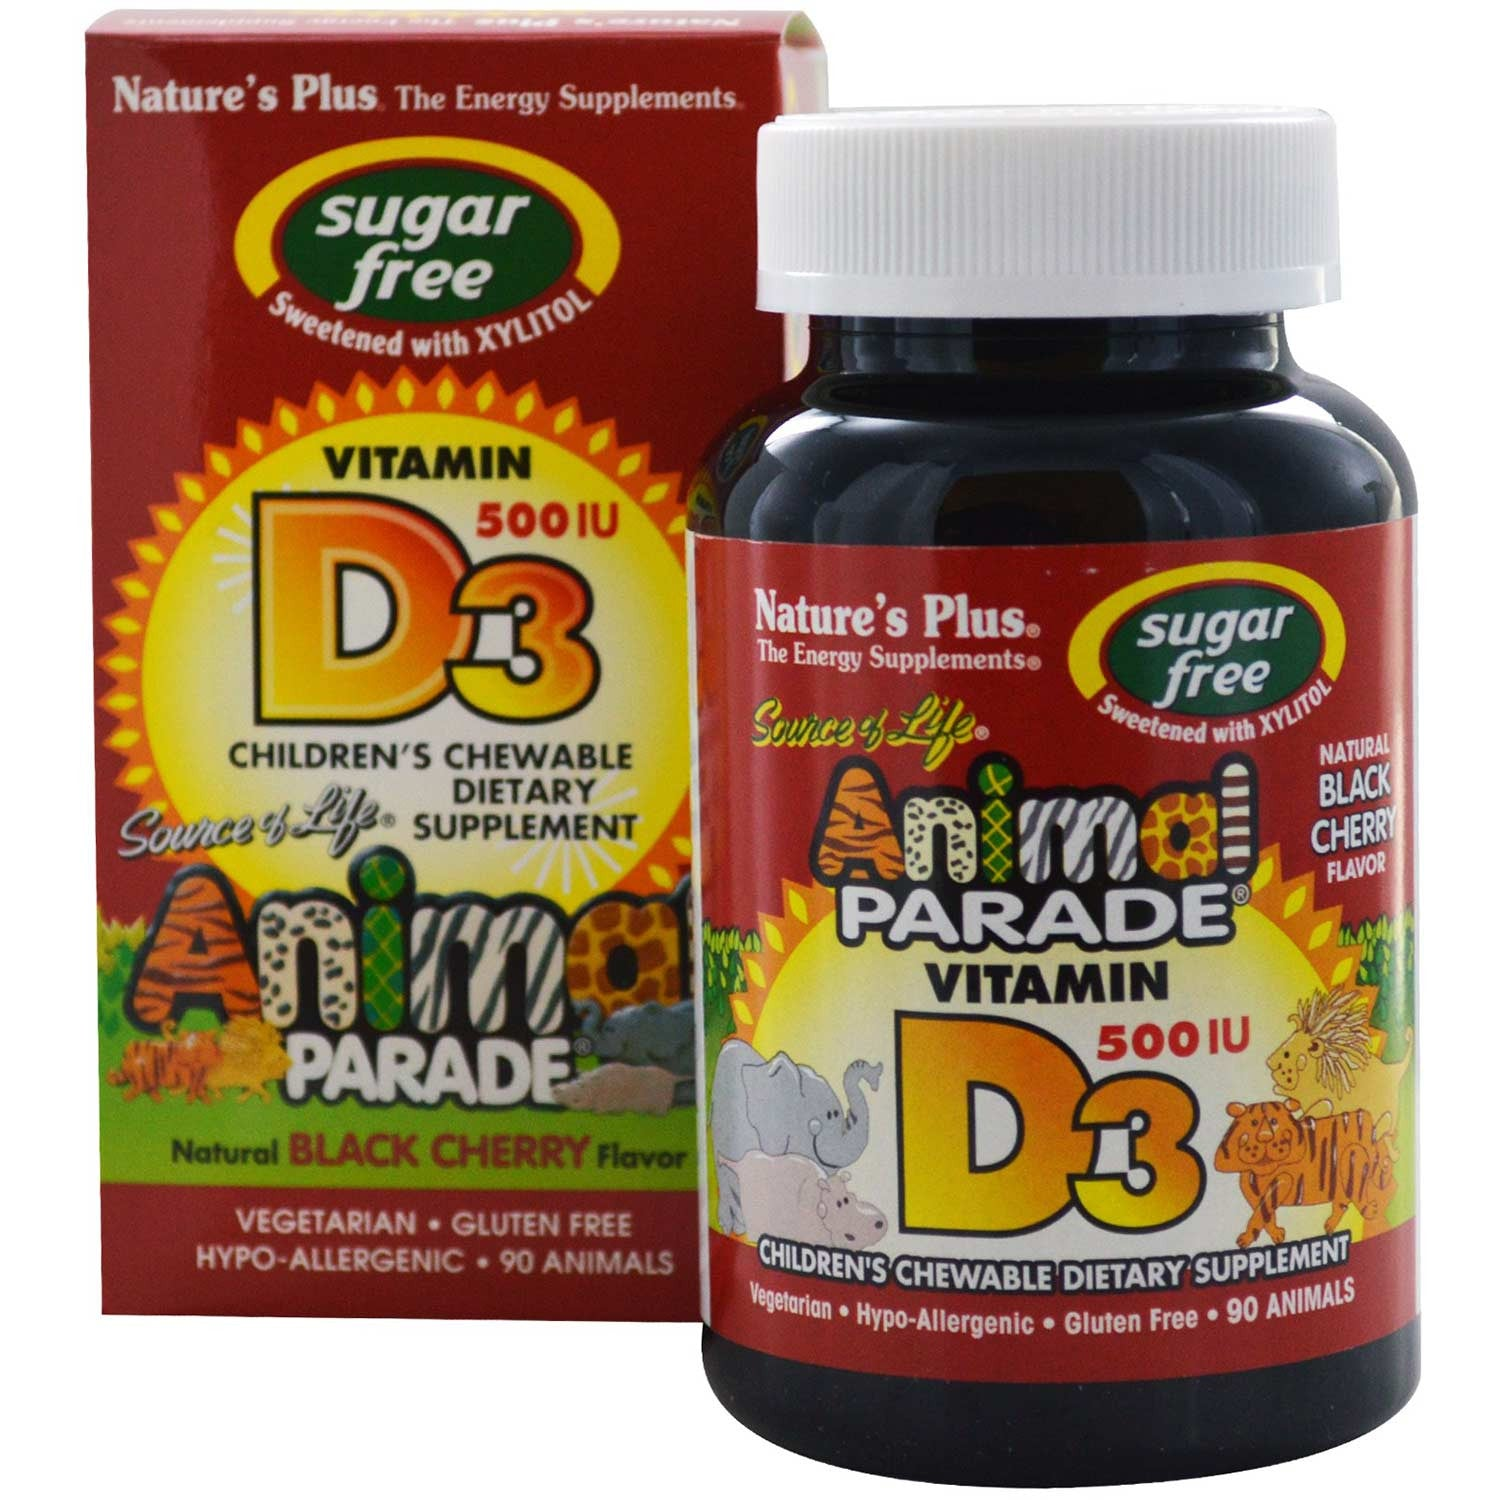 Natures Plus Source of Life Animal Parade Vitamin D3 500 IU Chewable - Black Cherry (Sugar-Free), 90 tabs.-NaturesWisdom